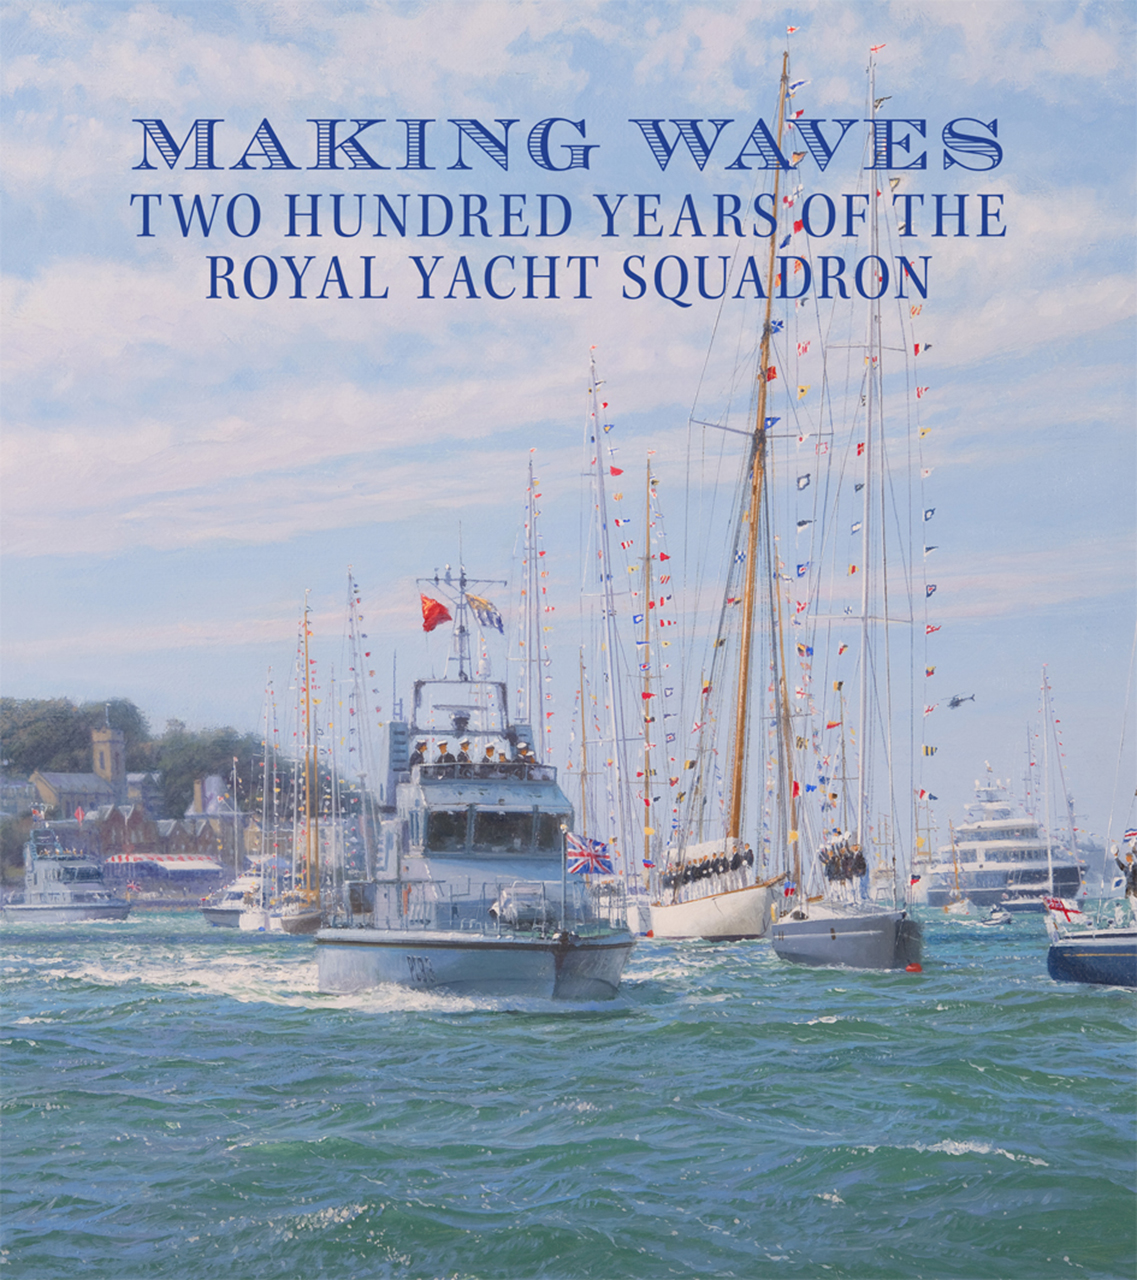 Making Waves: Two Hundred Years of the Royal Yacht Squadron